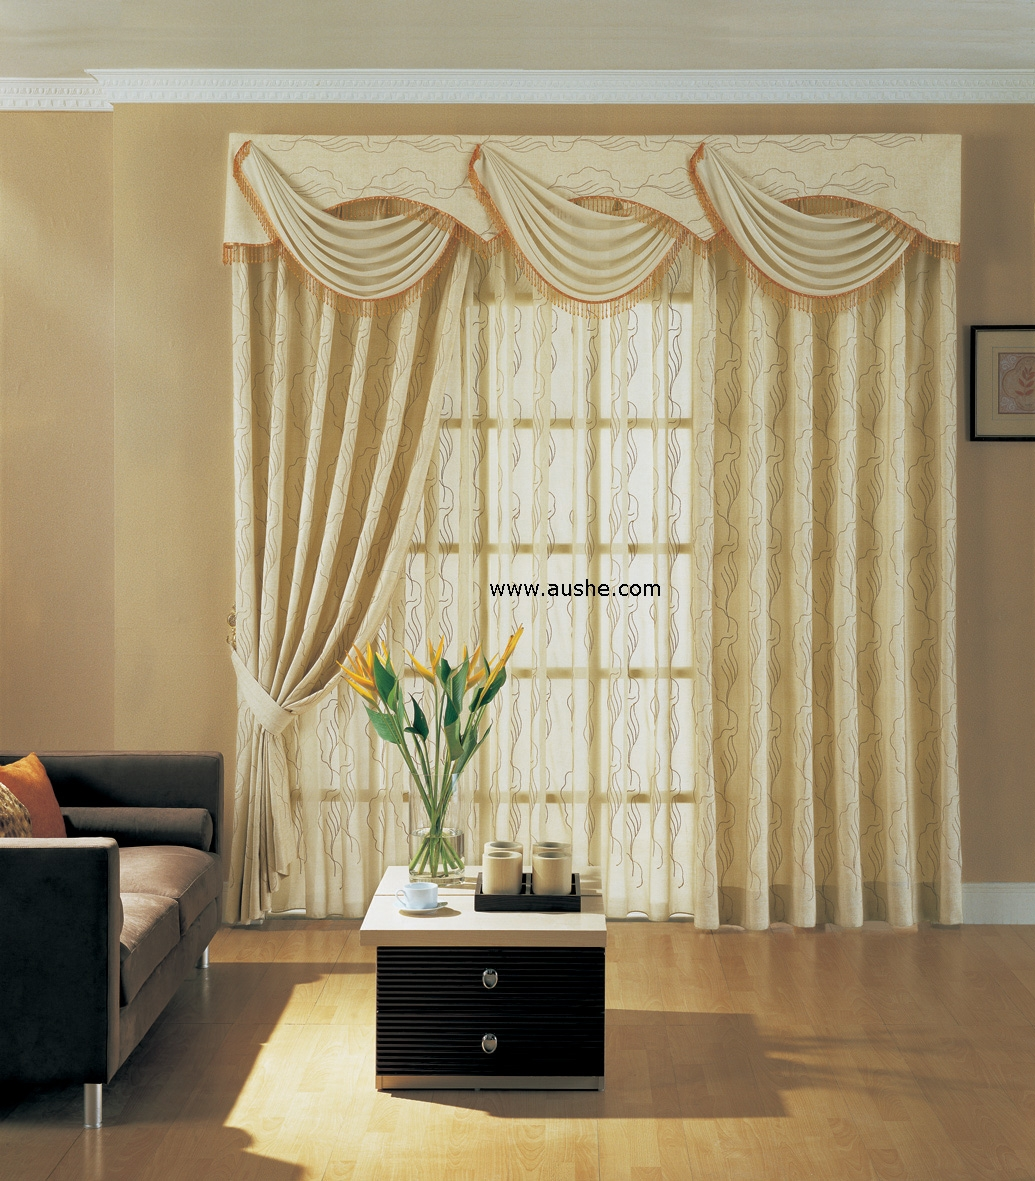 Stupendous Window Valance Curtain 86 Window Curtain Valance Ideas In Valance Curtain Ideas (Photo 5 of 25)